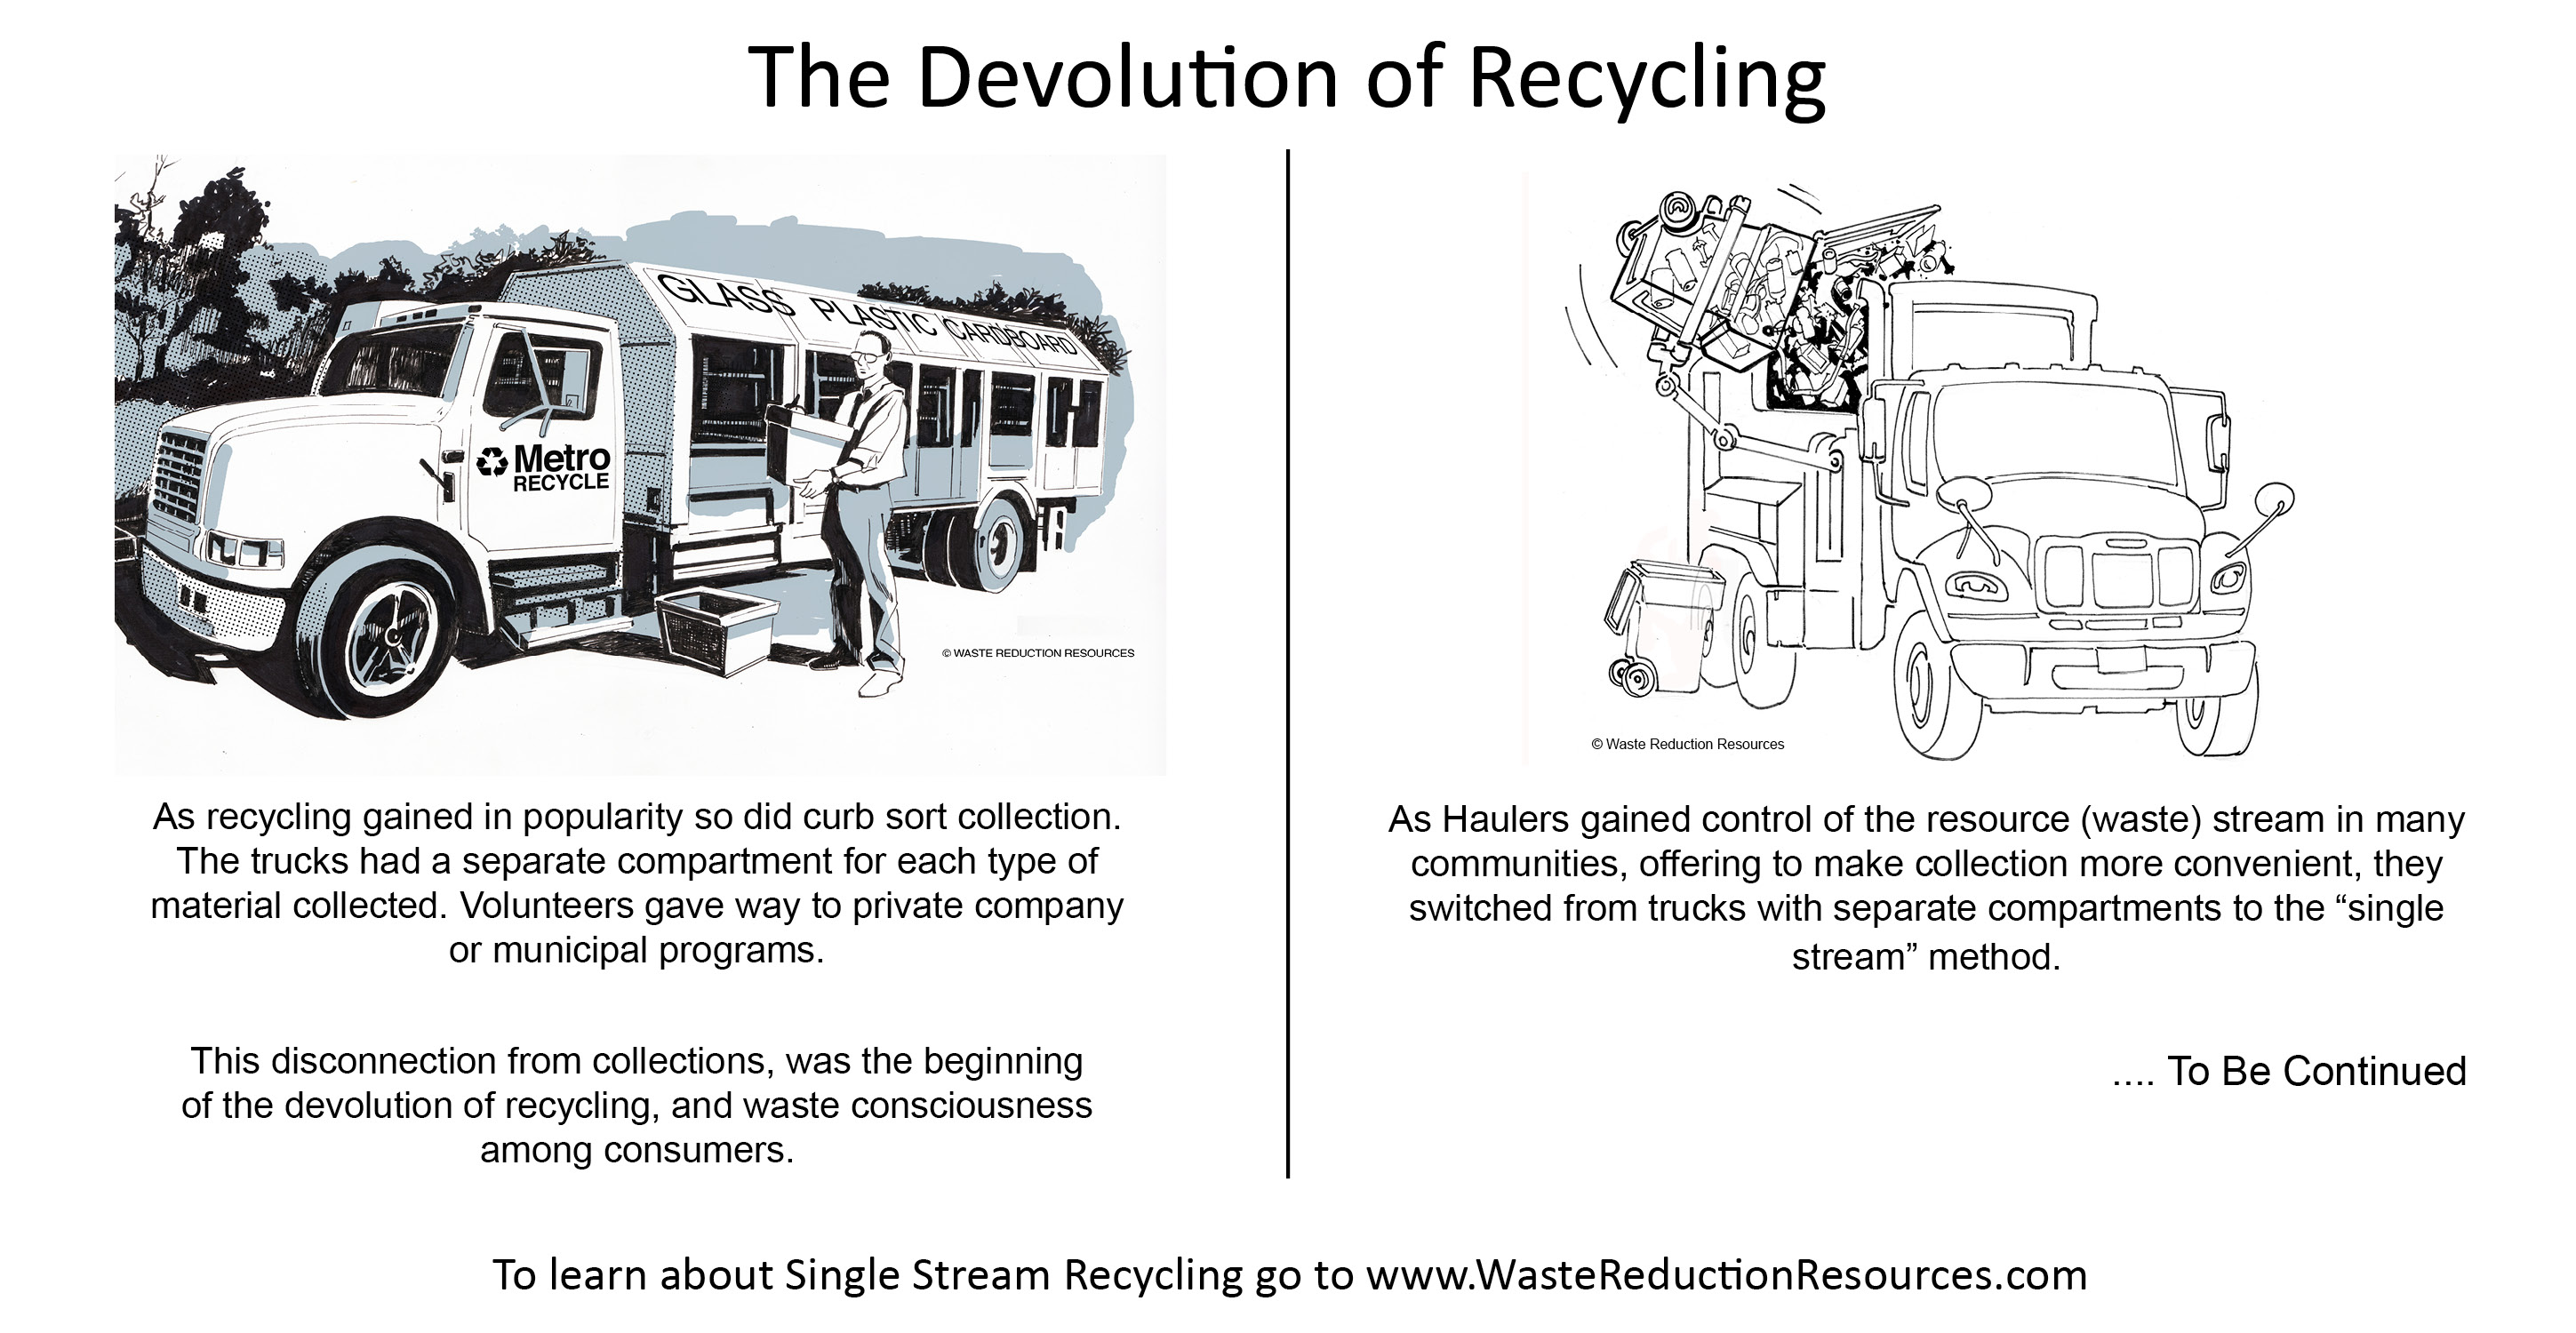 The Devolution of Recycling